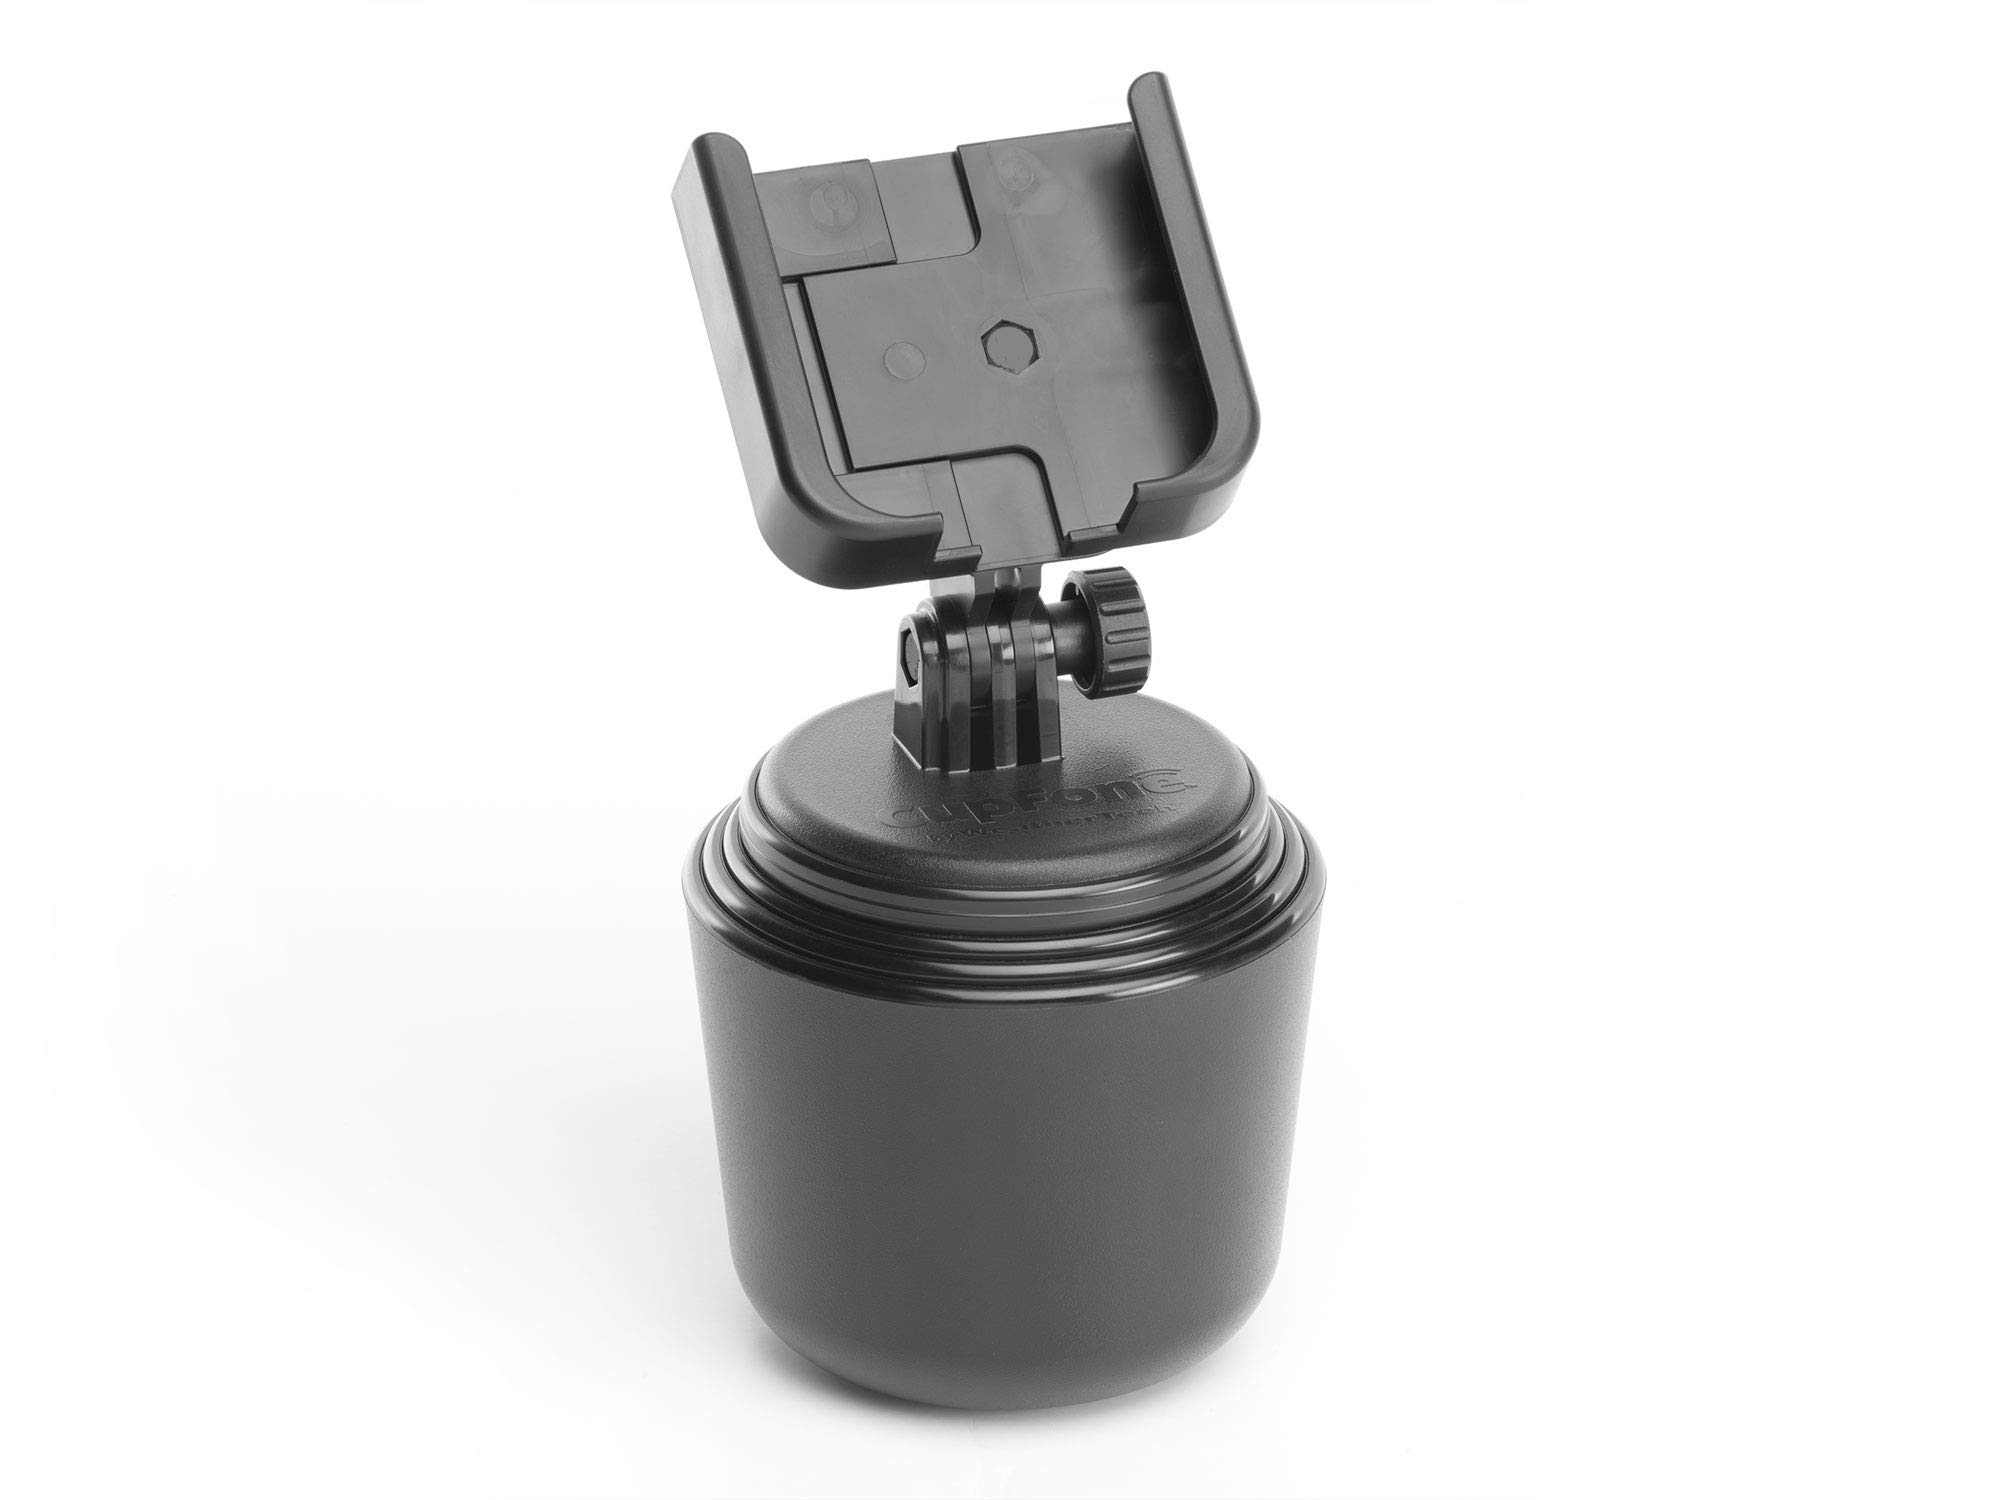 WeatherTech CupFone - Universal Adjustable Portable Cup Holder Car Mount for Cell Phones